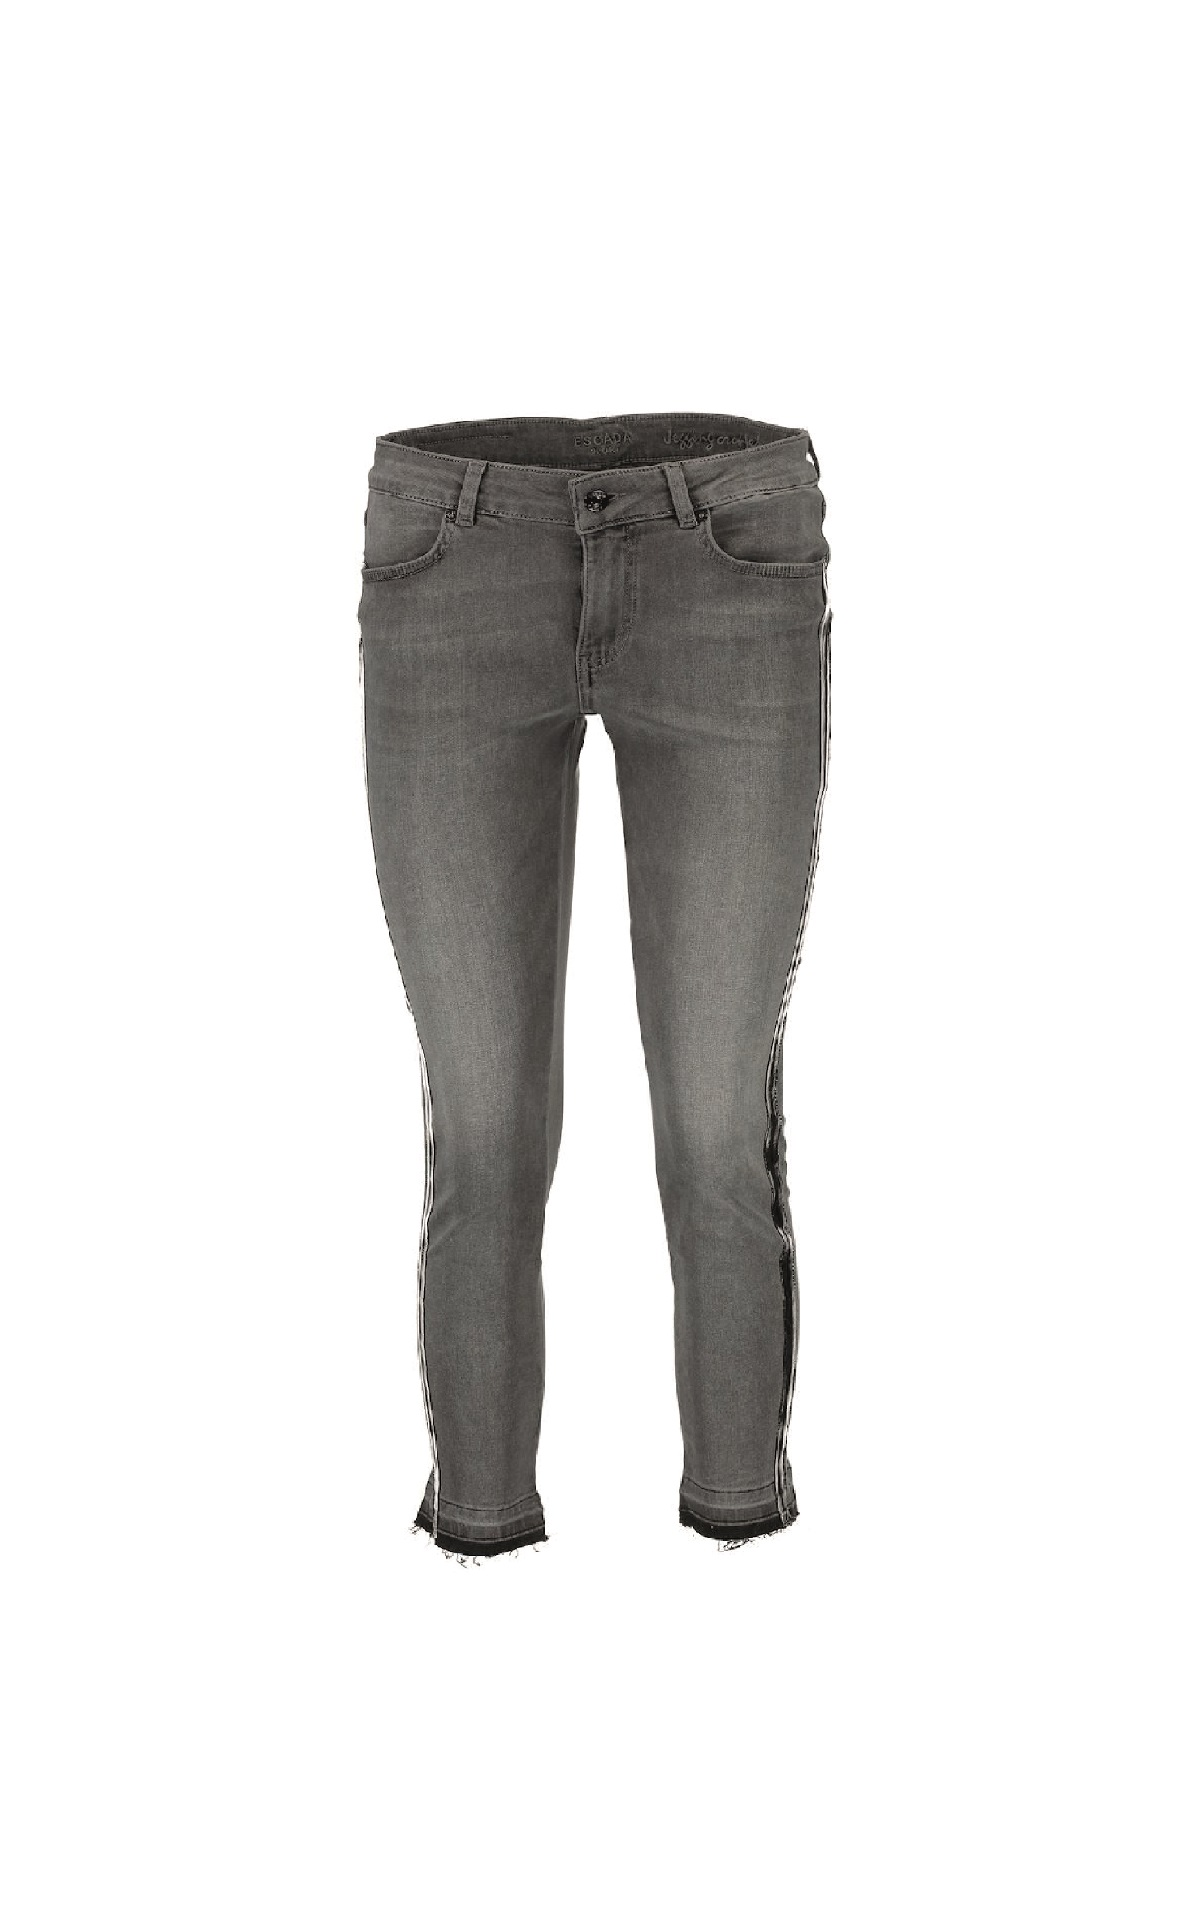 Grey denim jeans Escada